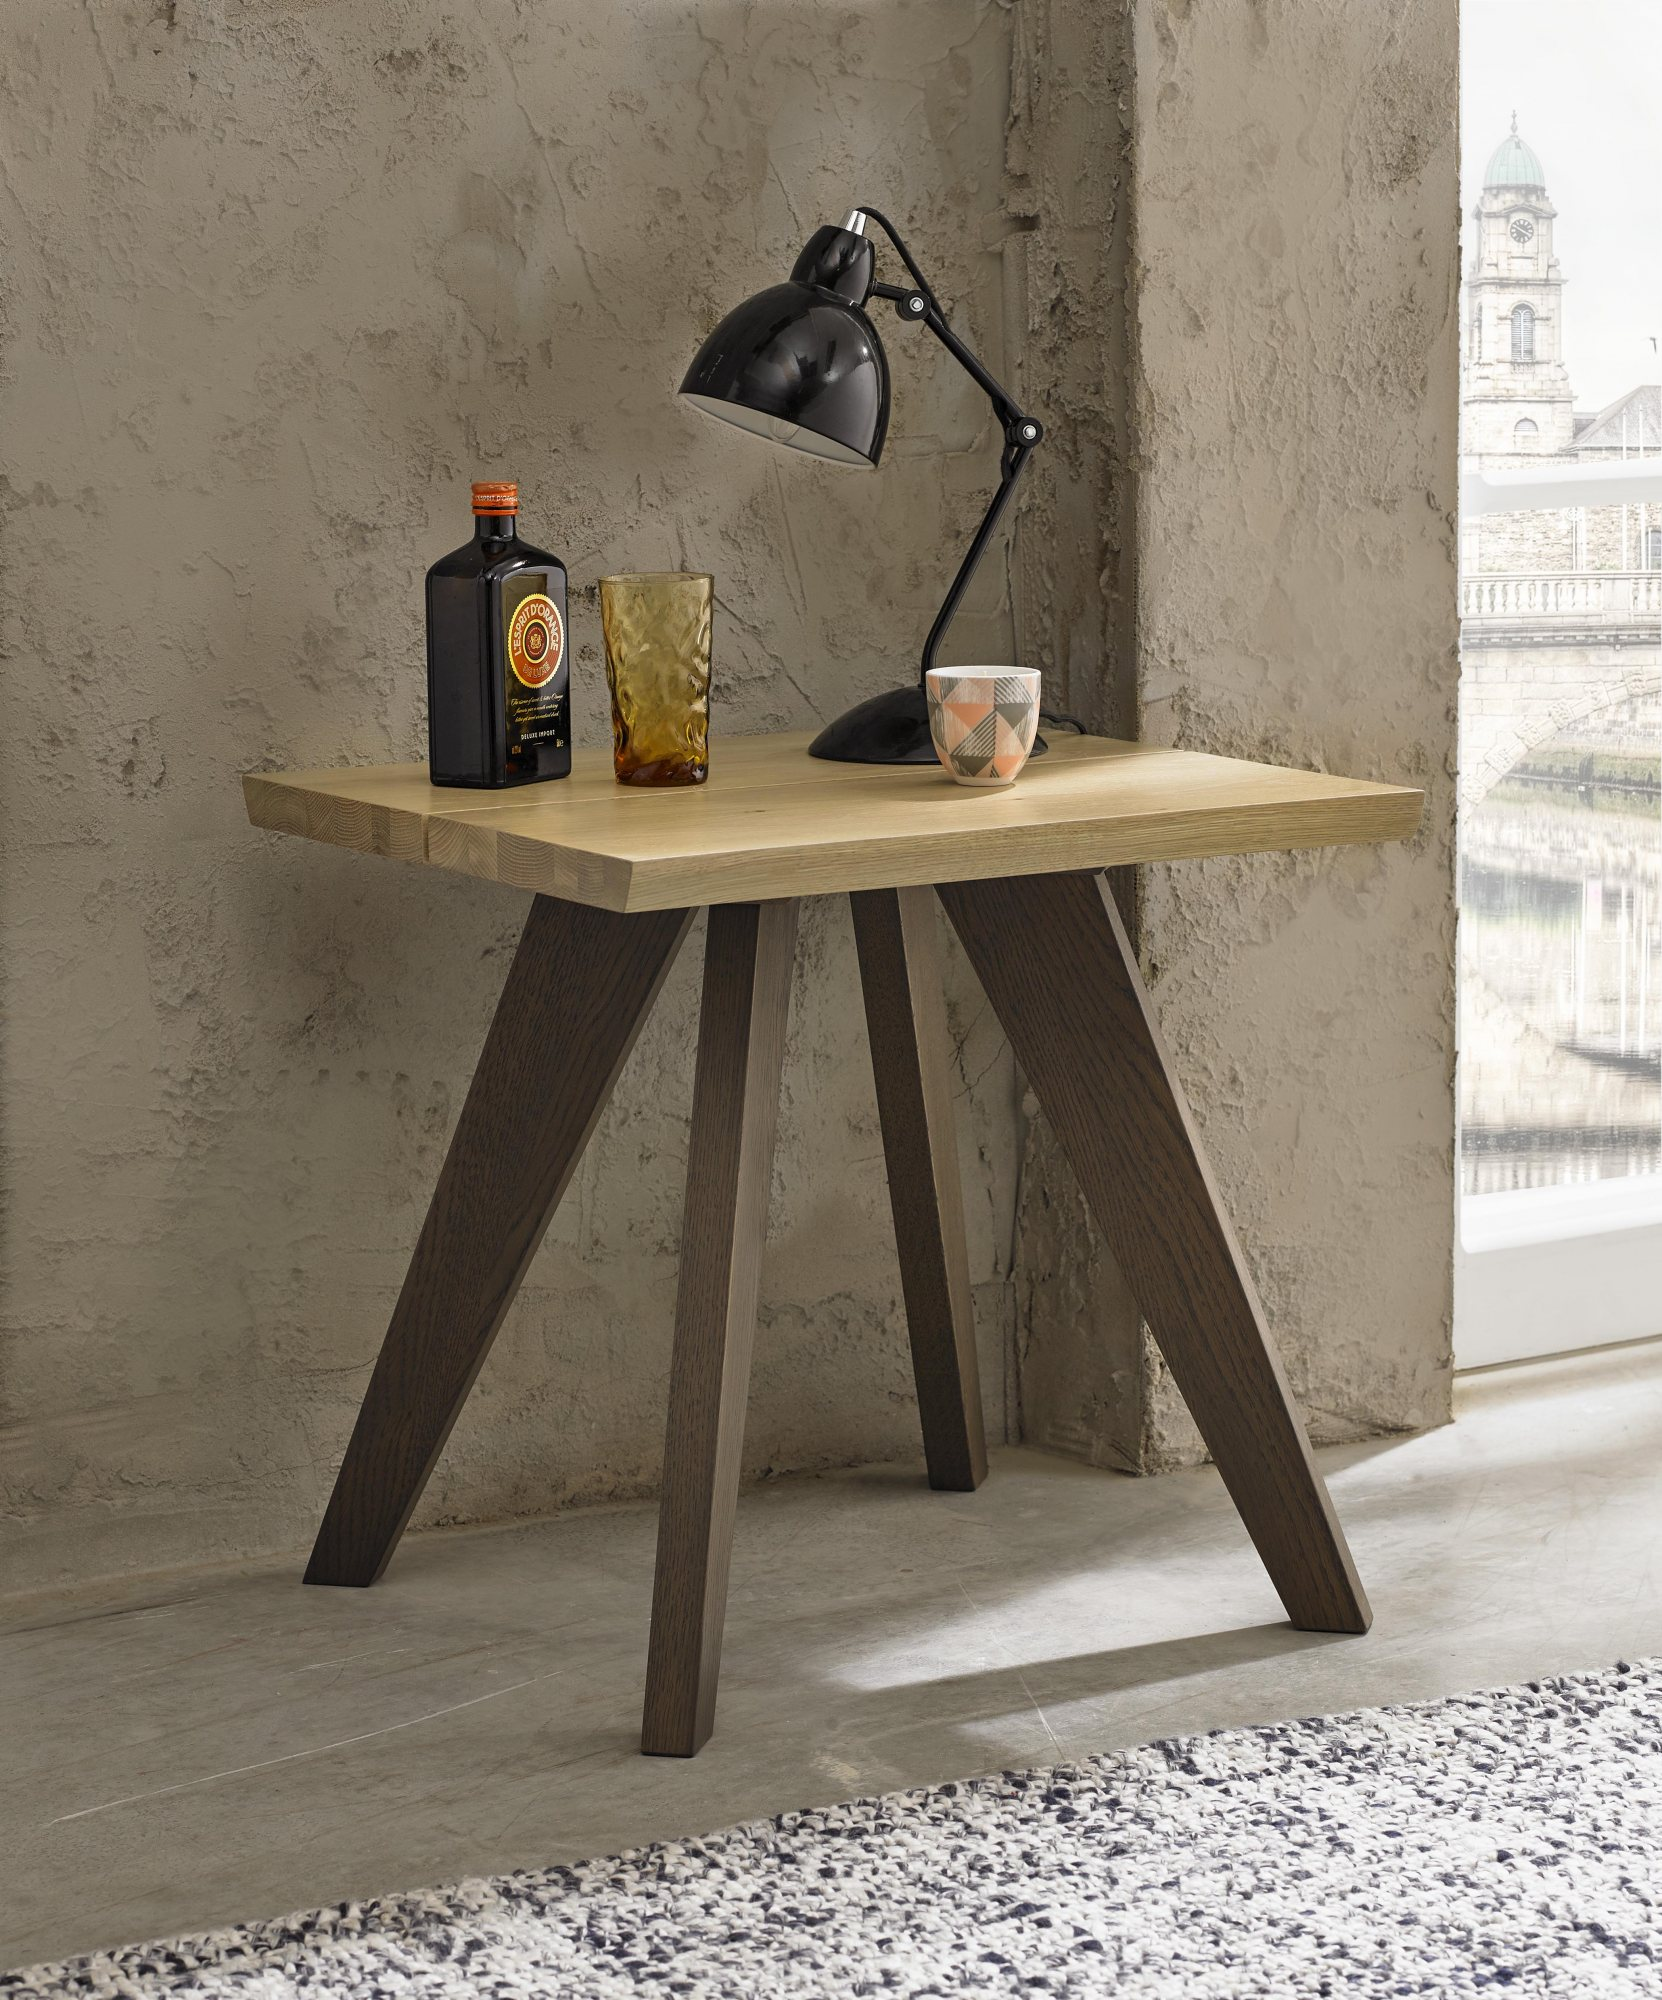 CARELL LAMP TABLE- L55cm x D50cm x H52cm